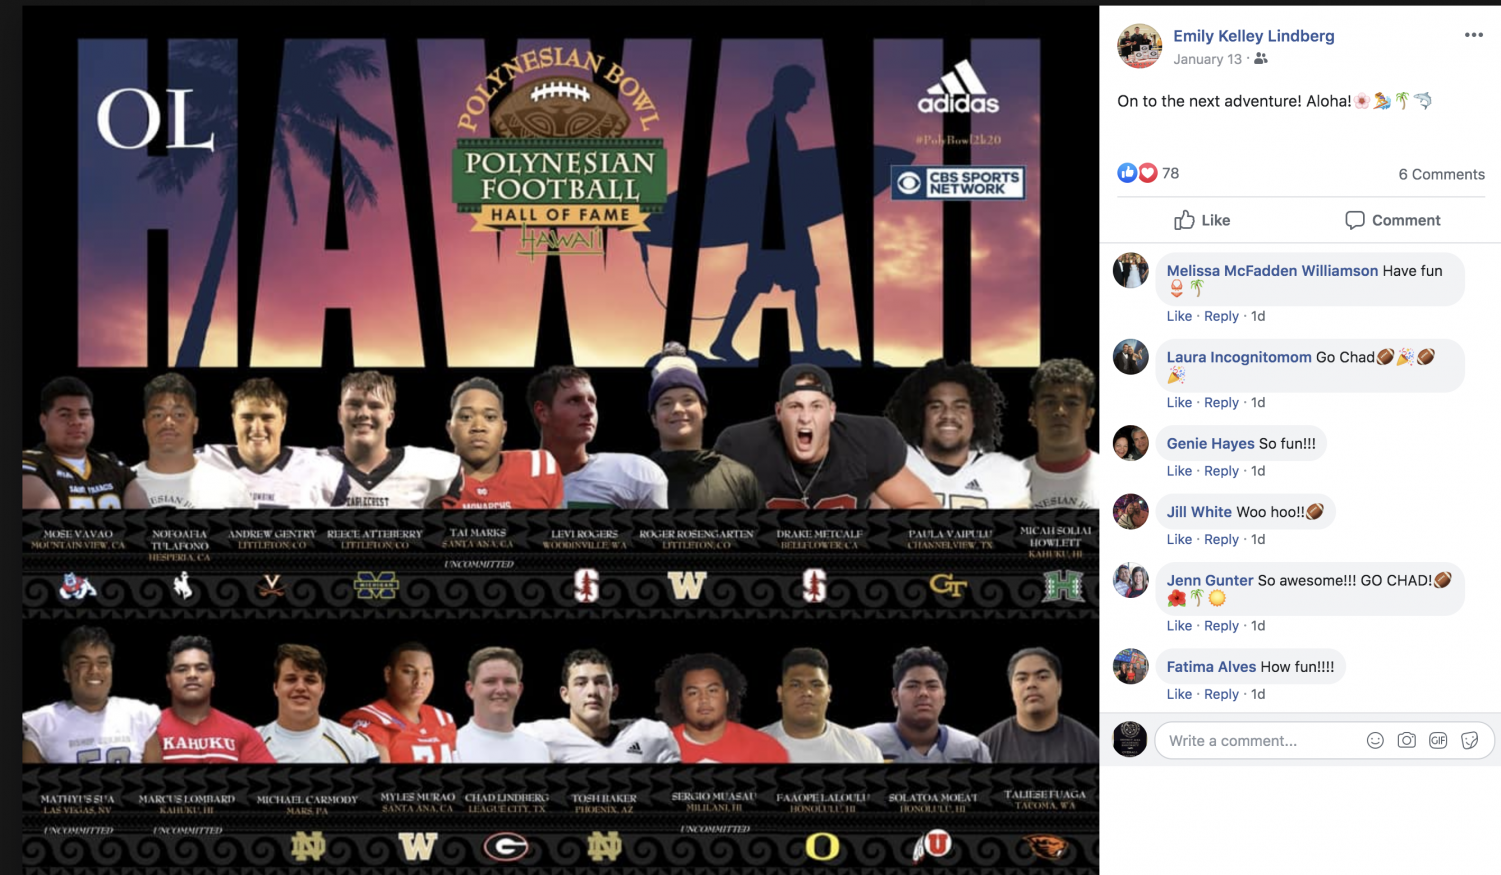 Lindberg is playing in the Polynesian Bowl this weekend-ALOHA!